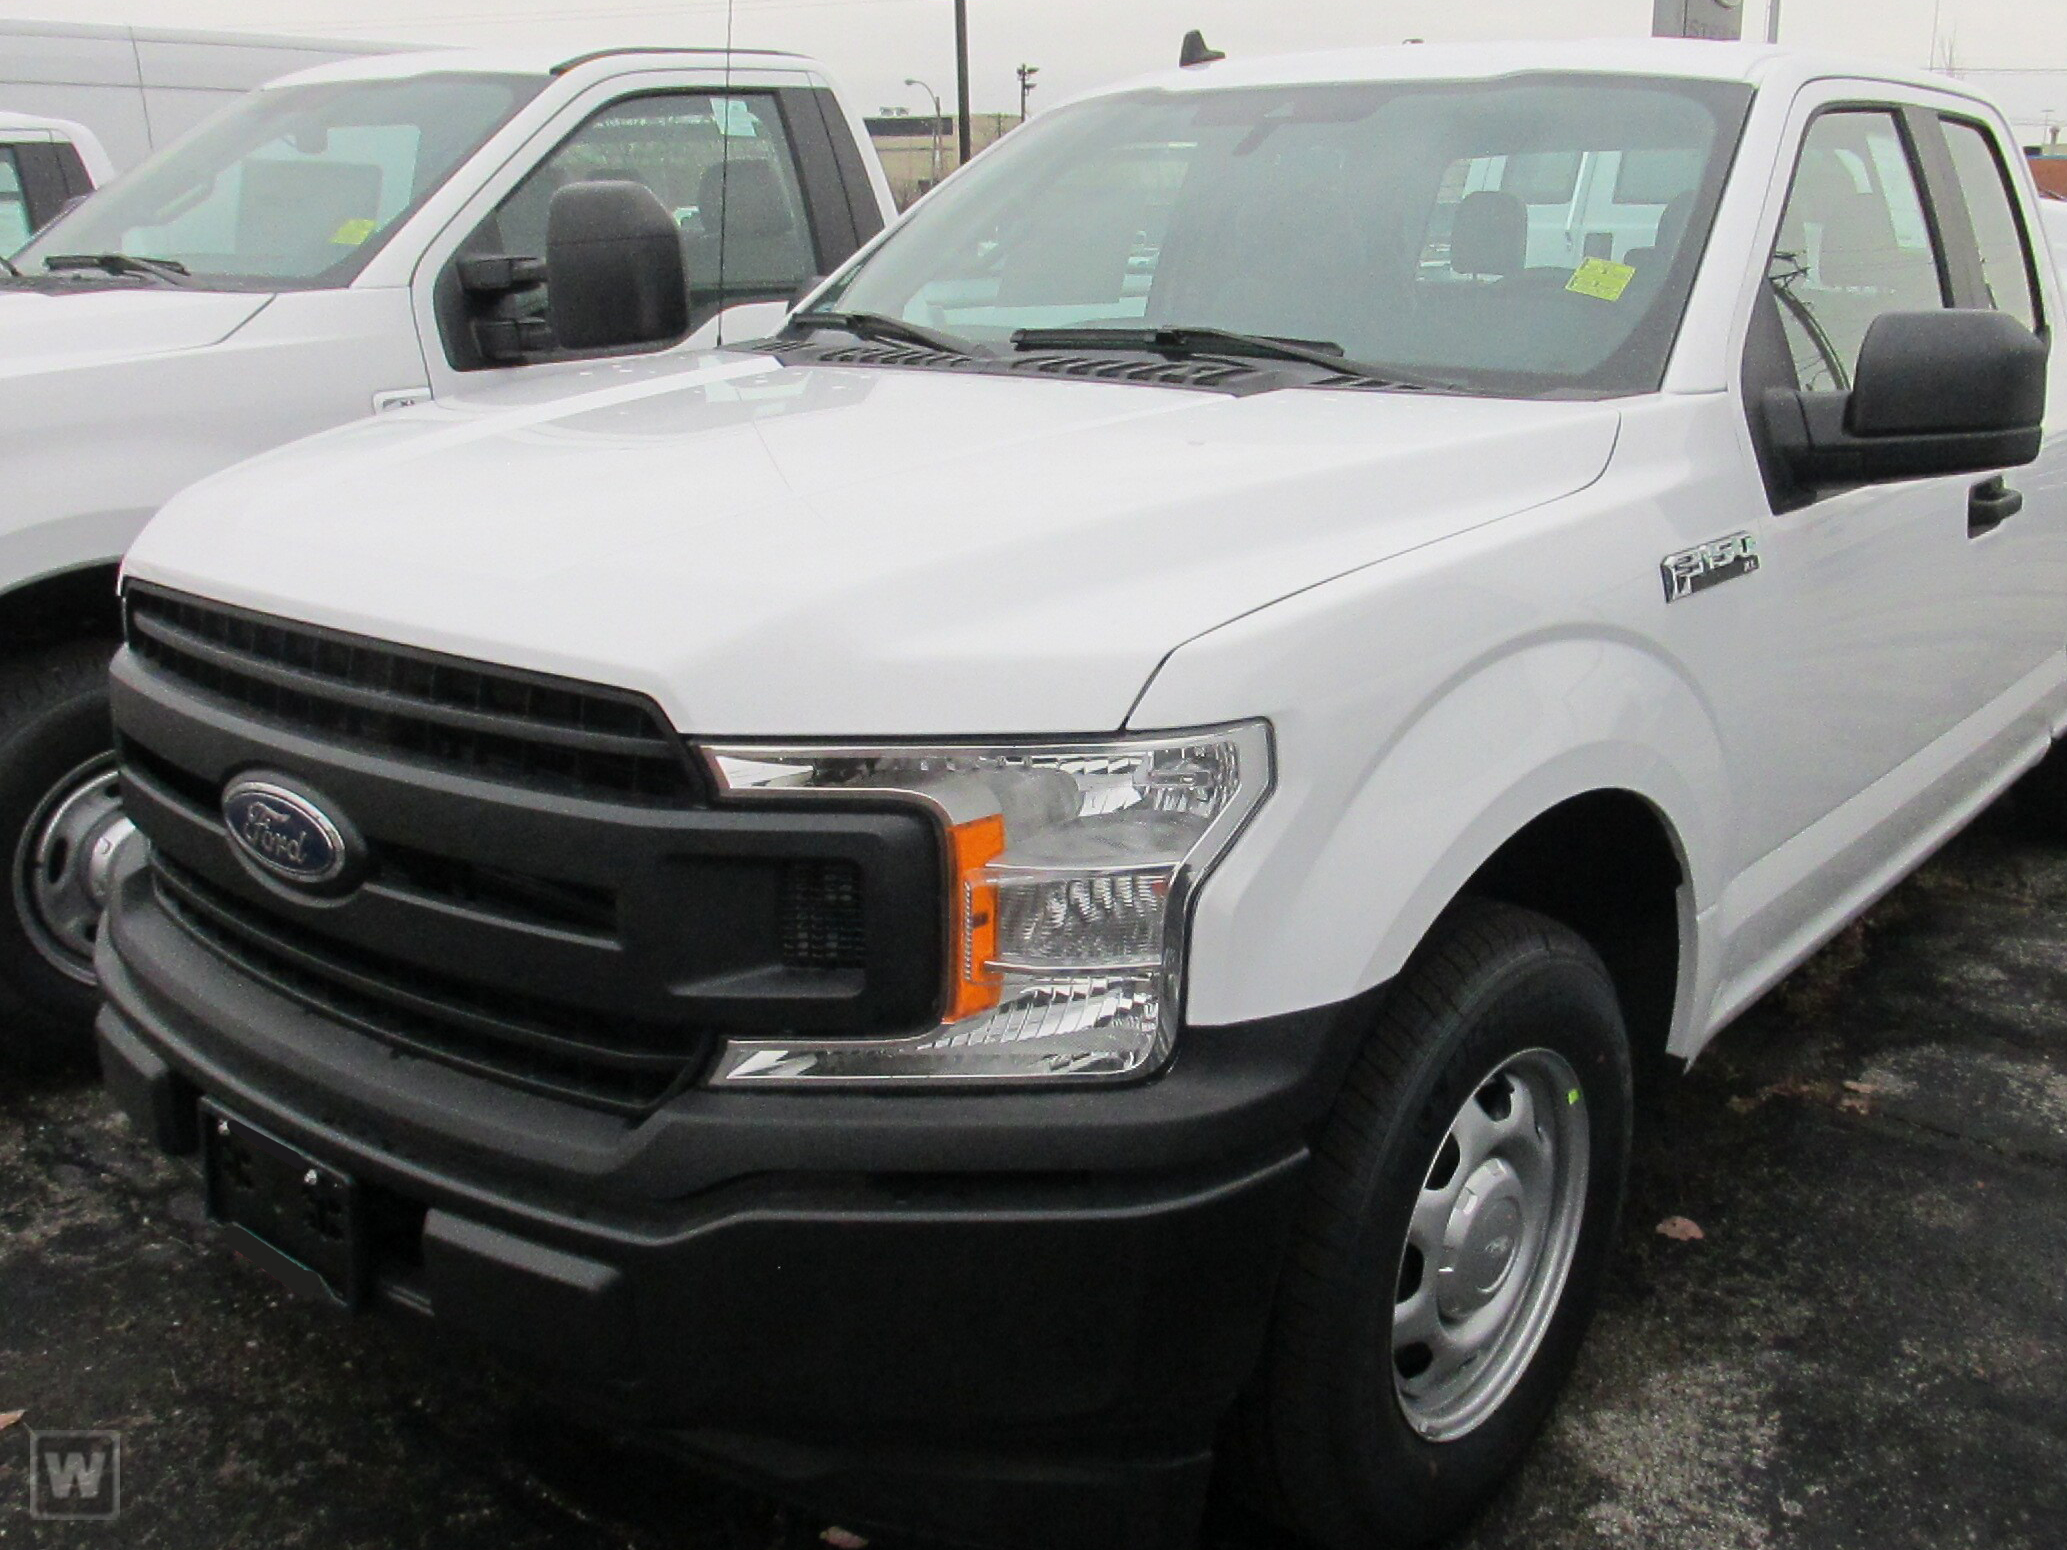 2020 Ford F-150 Super Cab 4x4, Pickup #L896 - photo 1